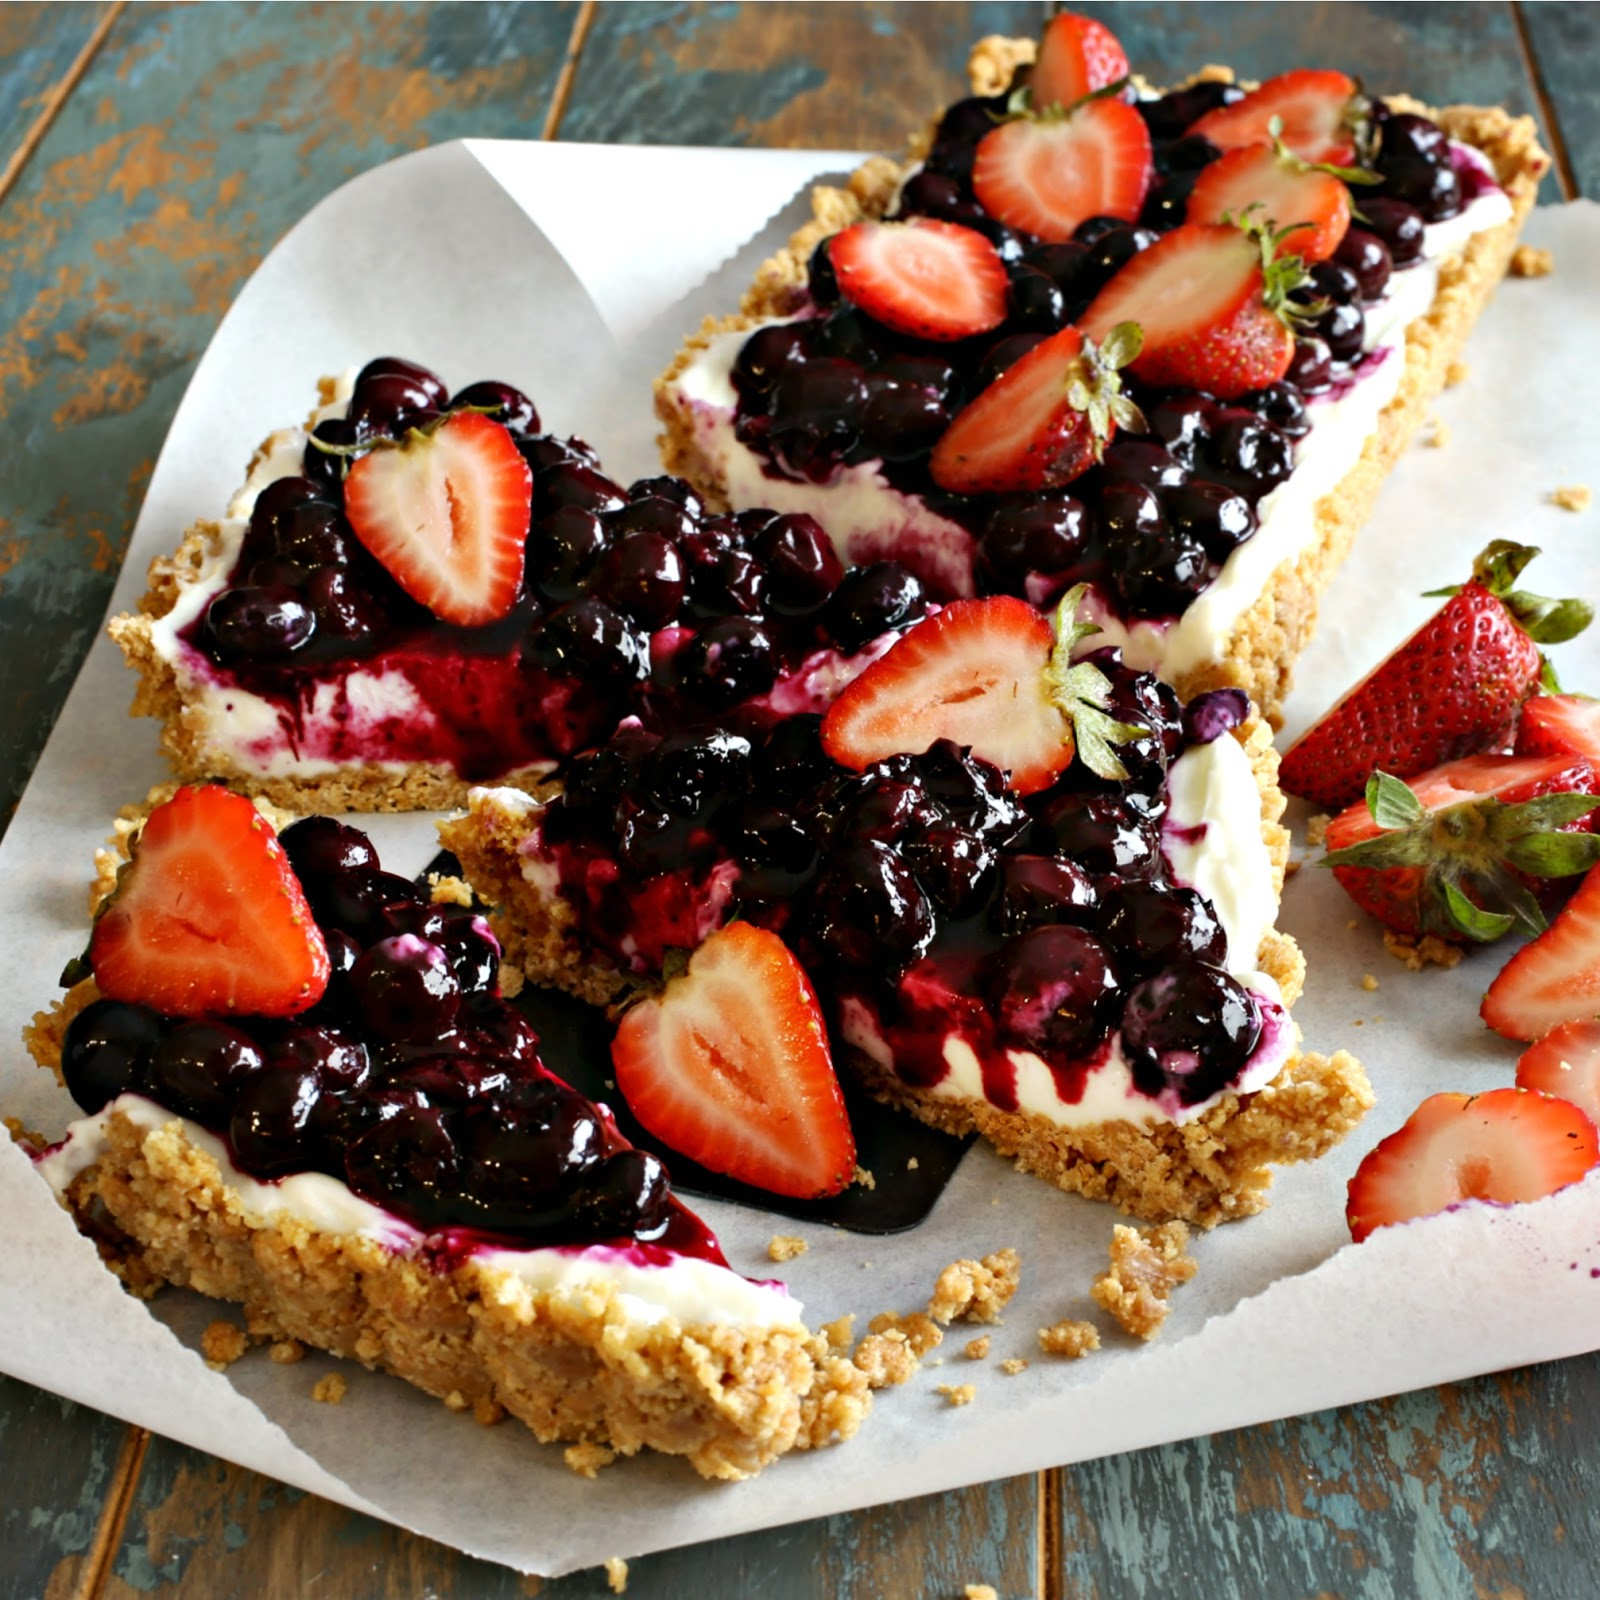 Recipe for a no-bake cheesecake made with Greek yogurt, a graham cracker crust and a blueberry compote topping.